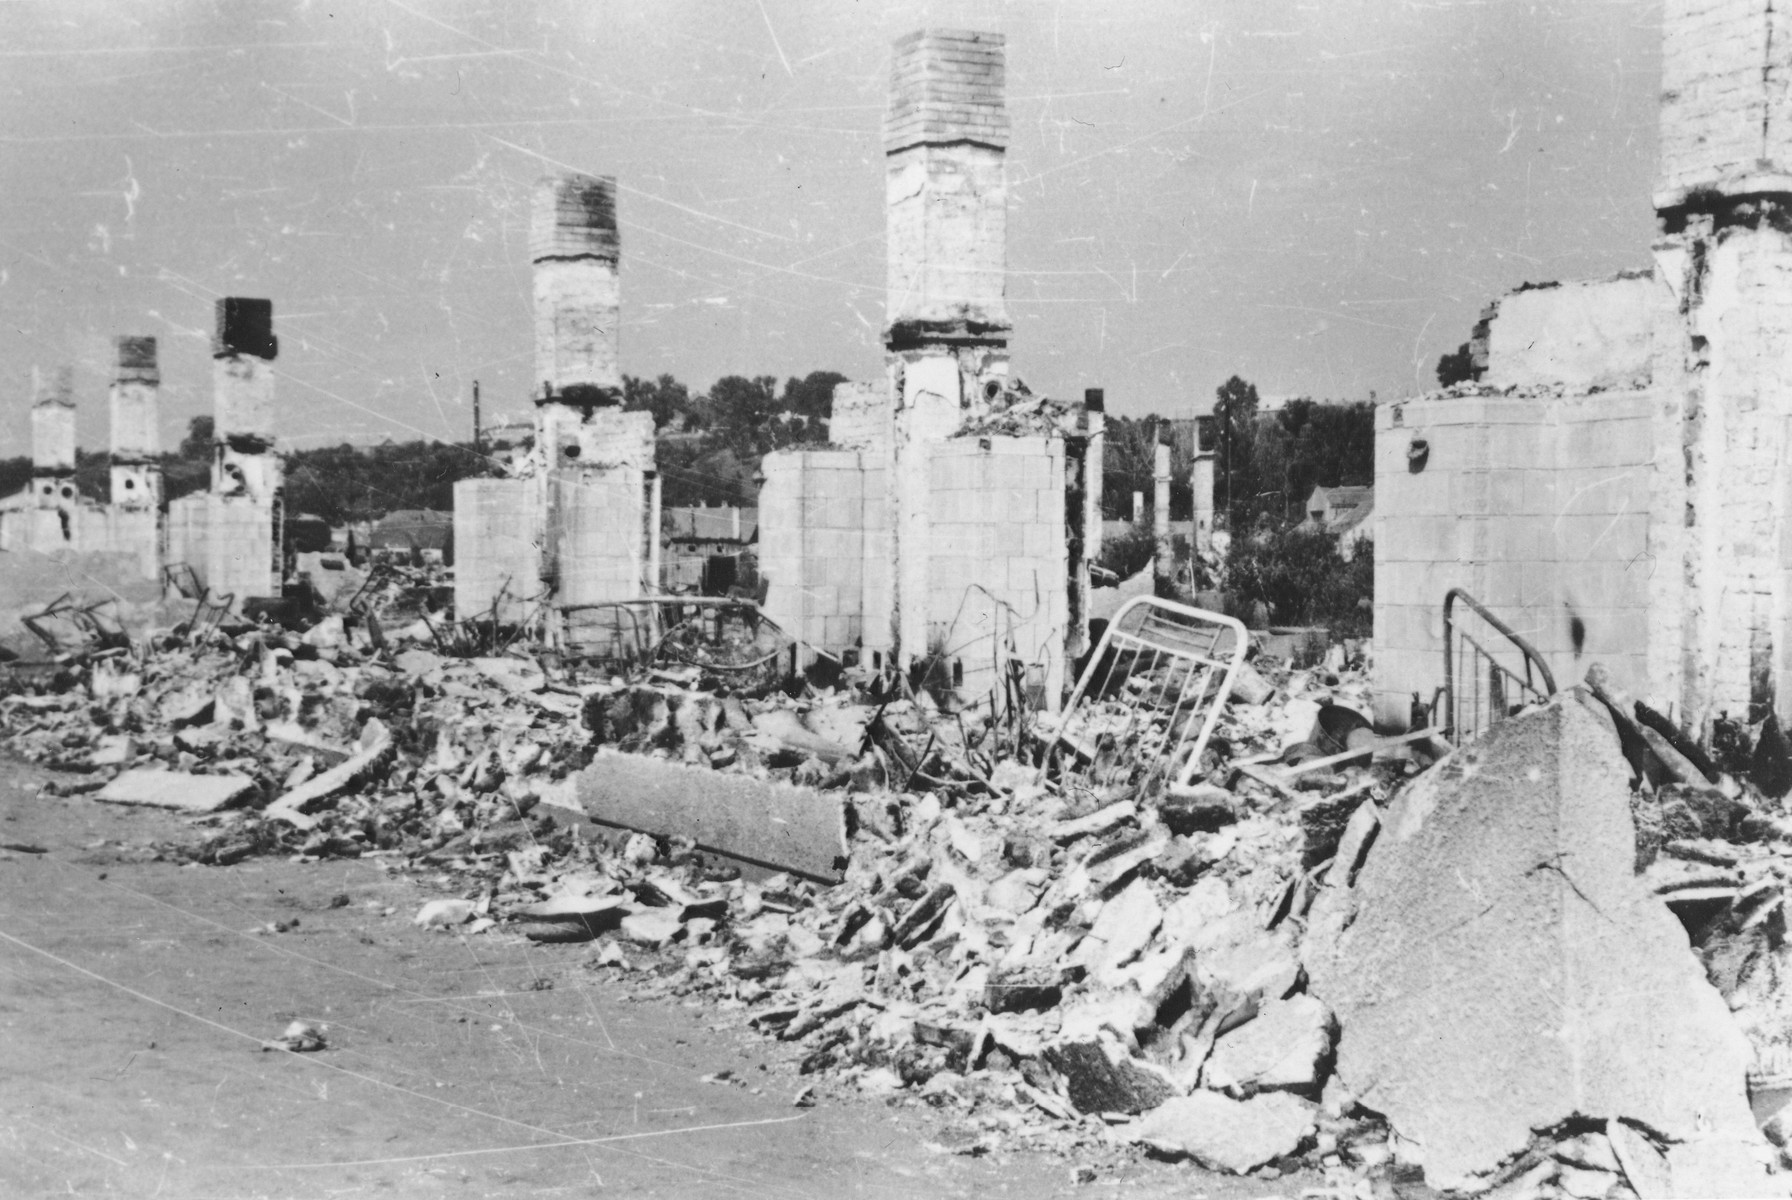 View of the ruins of the Kovno ghetto after its liquidation.  [ALSO HAVE OVERSIZED PRINT.]